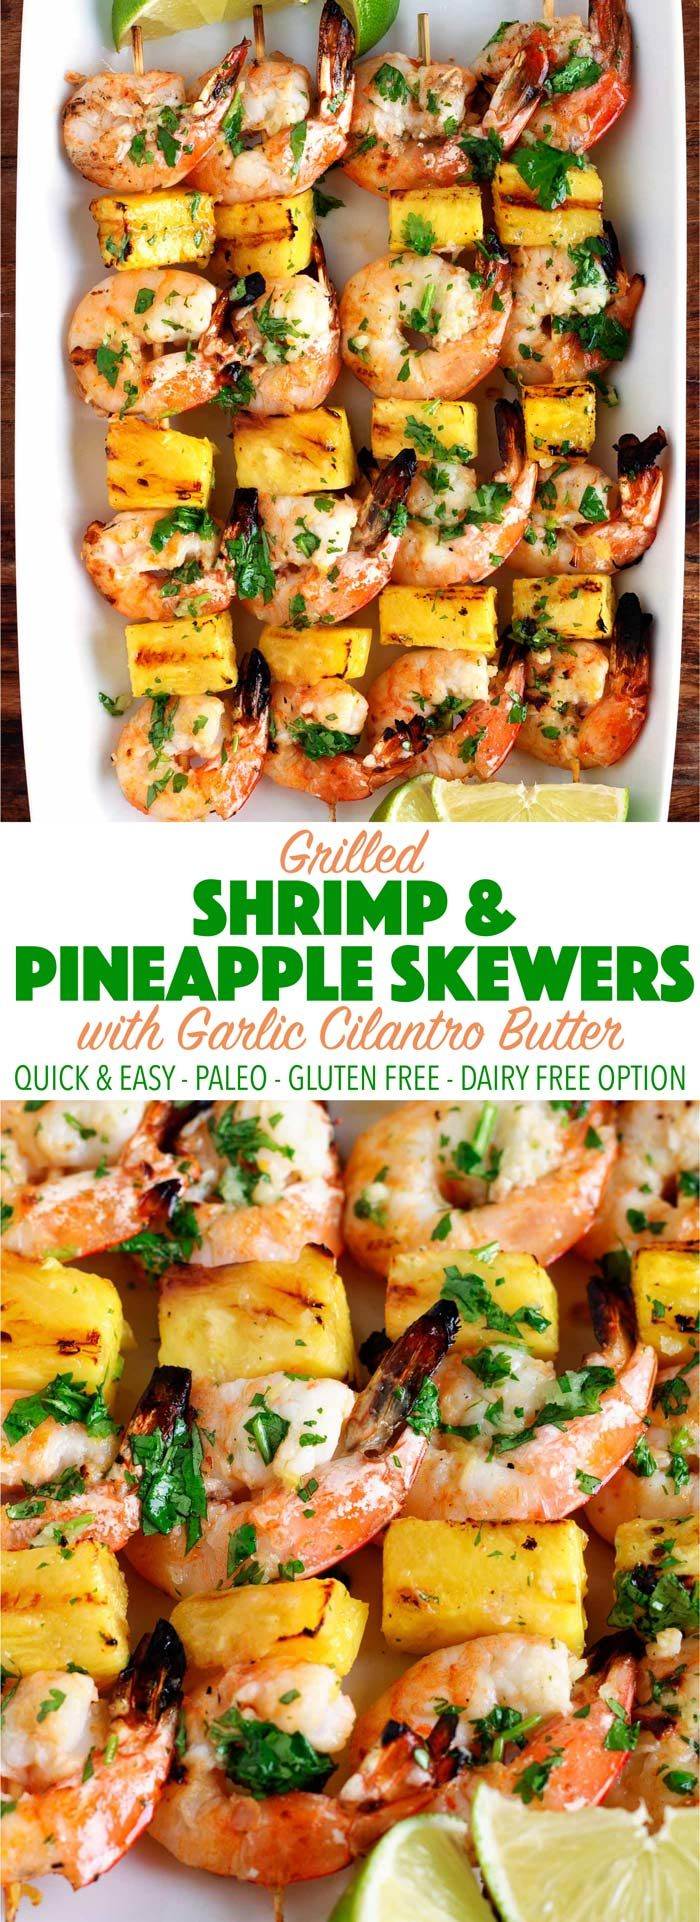 So delicous and easy! Less than 25 mins to make these grilled shrimp and pinapple skewers. Perfect for dinner or a party! Paleo, gluten free, dairy free, whole30. #grilledshrimp